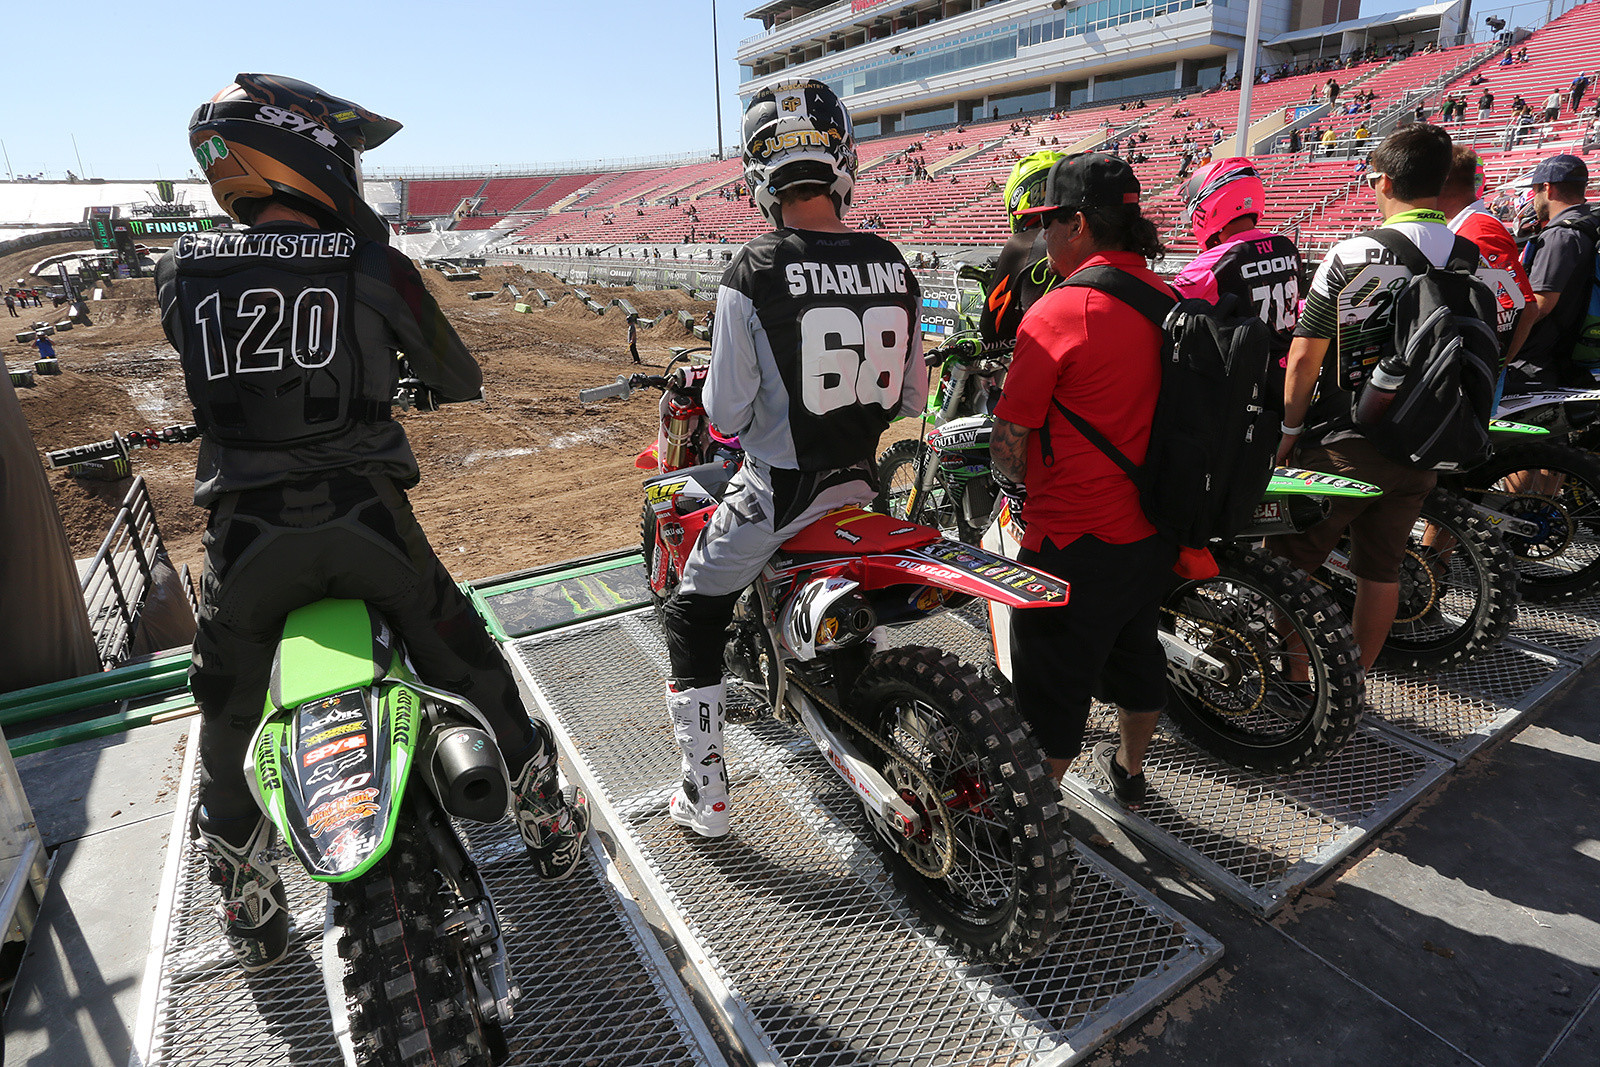 The metal grate that we will see standard for 2018 in Supercross.